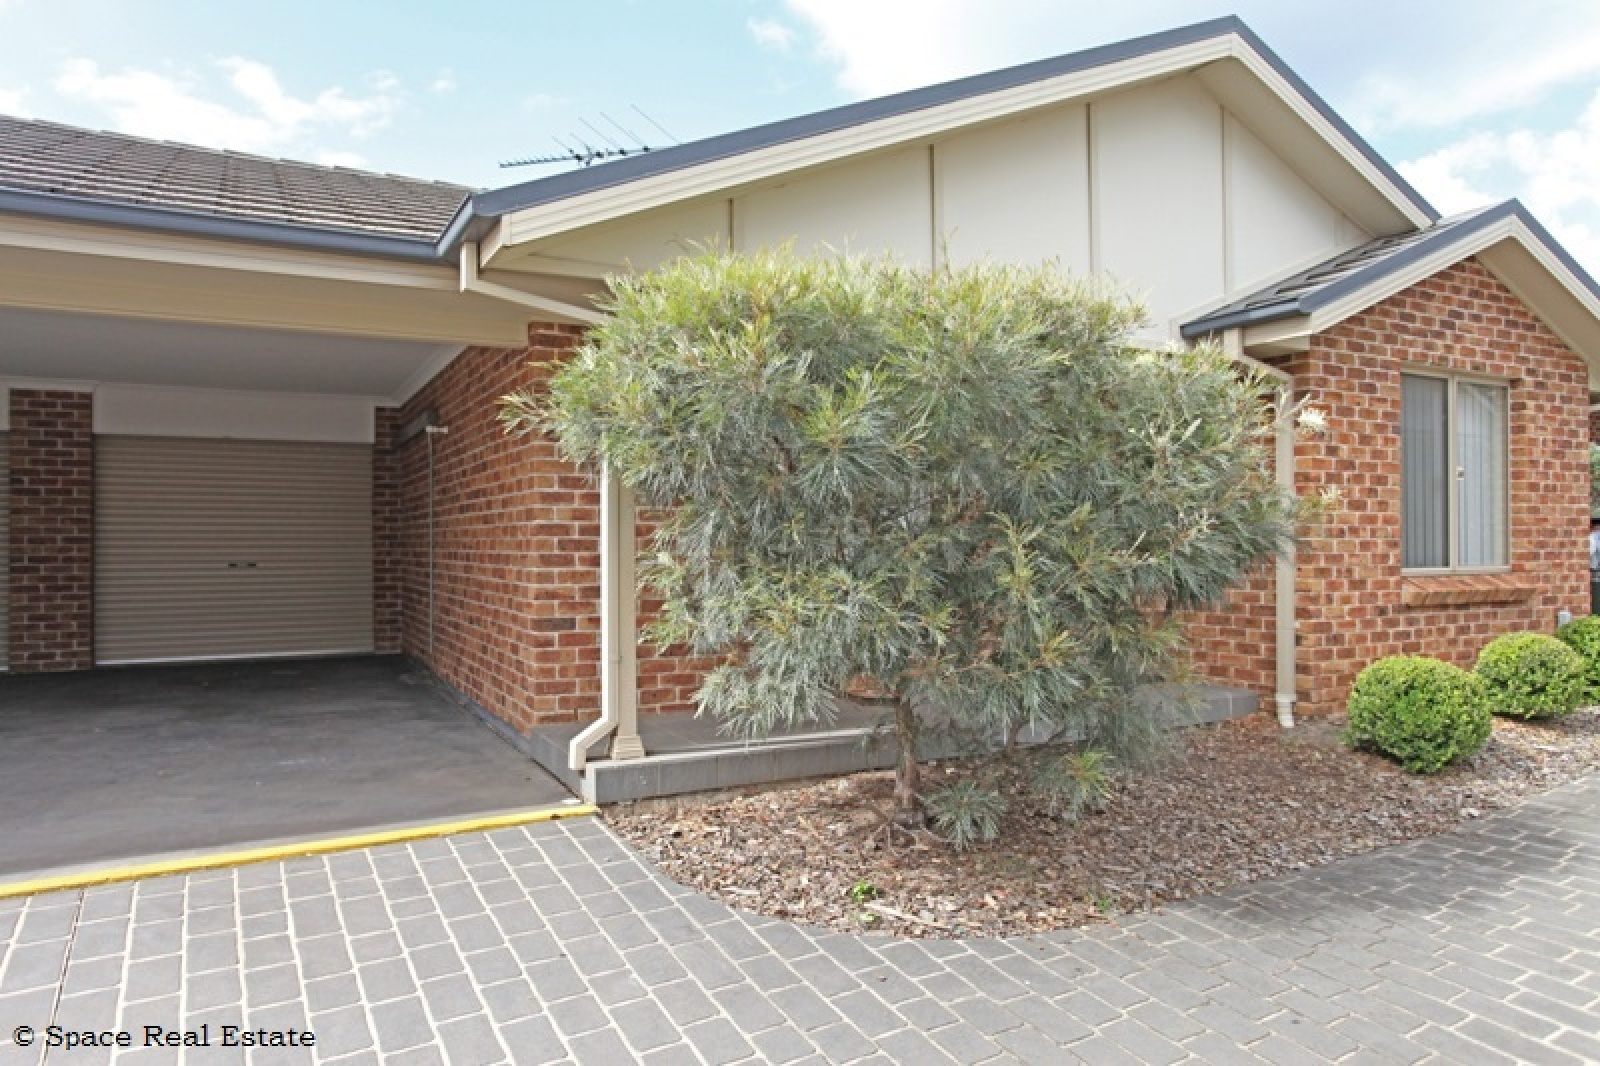 16/7 Thomas Rose Drive,Rosemeadow,NSW,2 Bedrooms Bedrooms,1 BathroomBathrooms,Villa,Thomas Rose Drive,1472